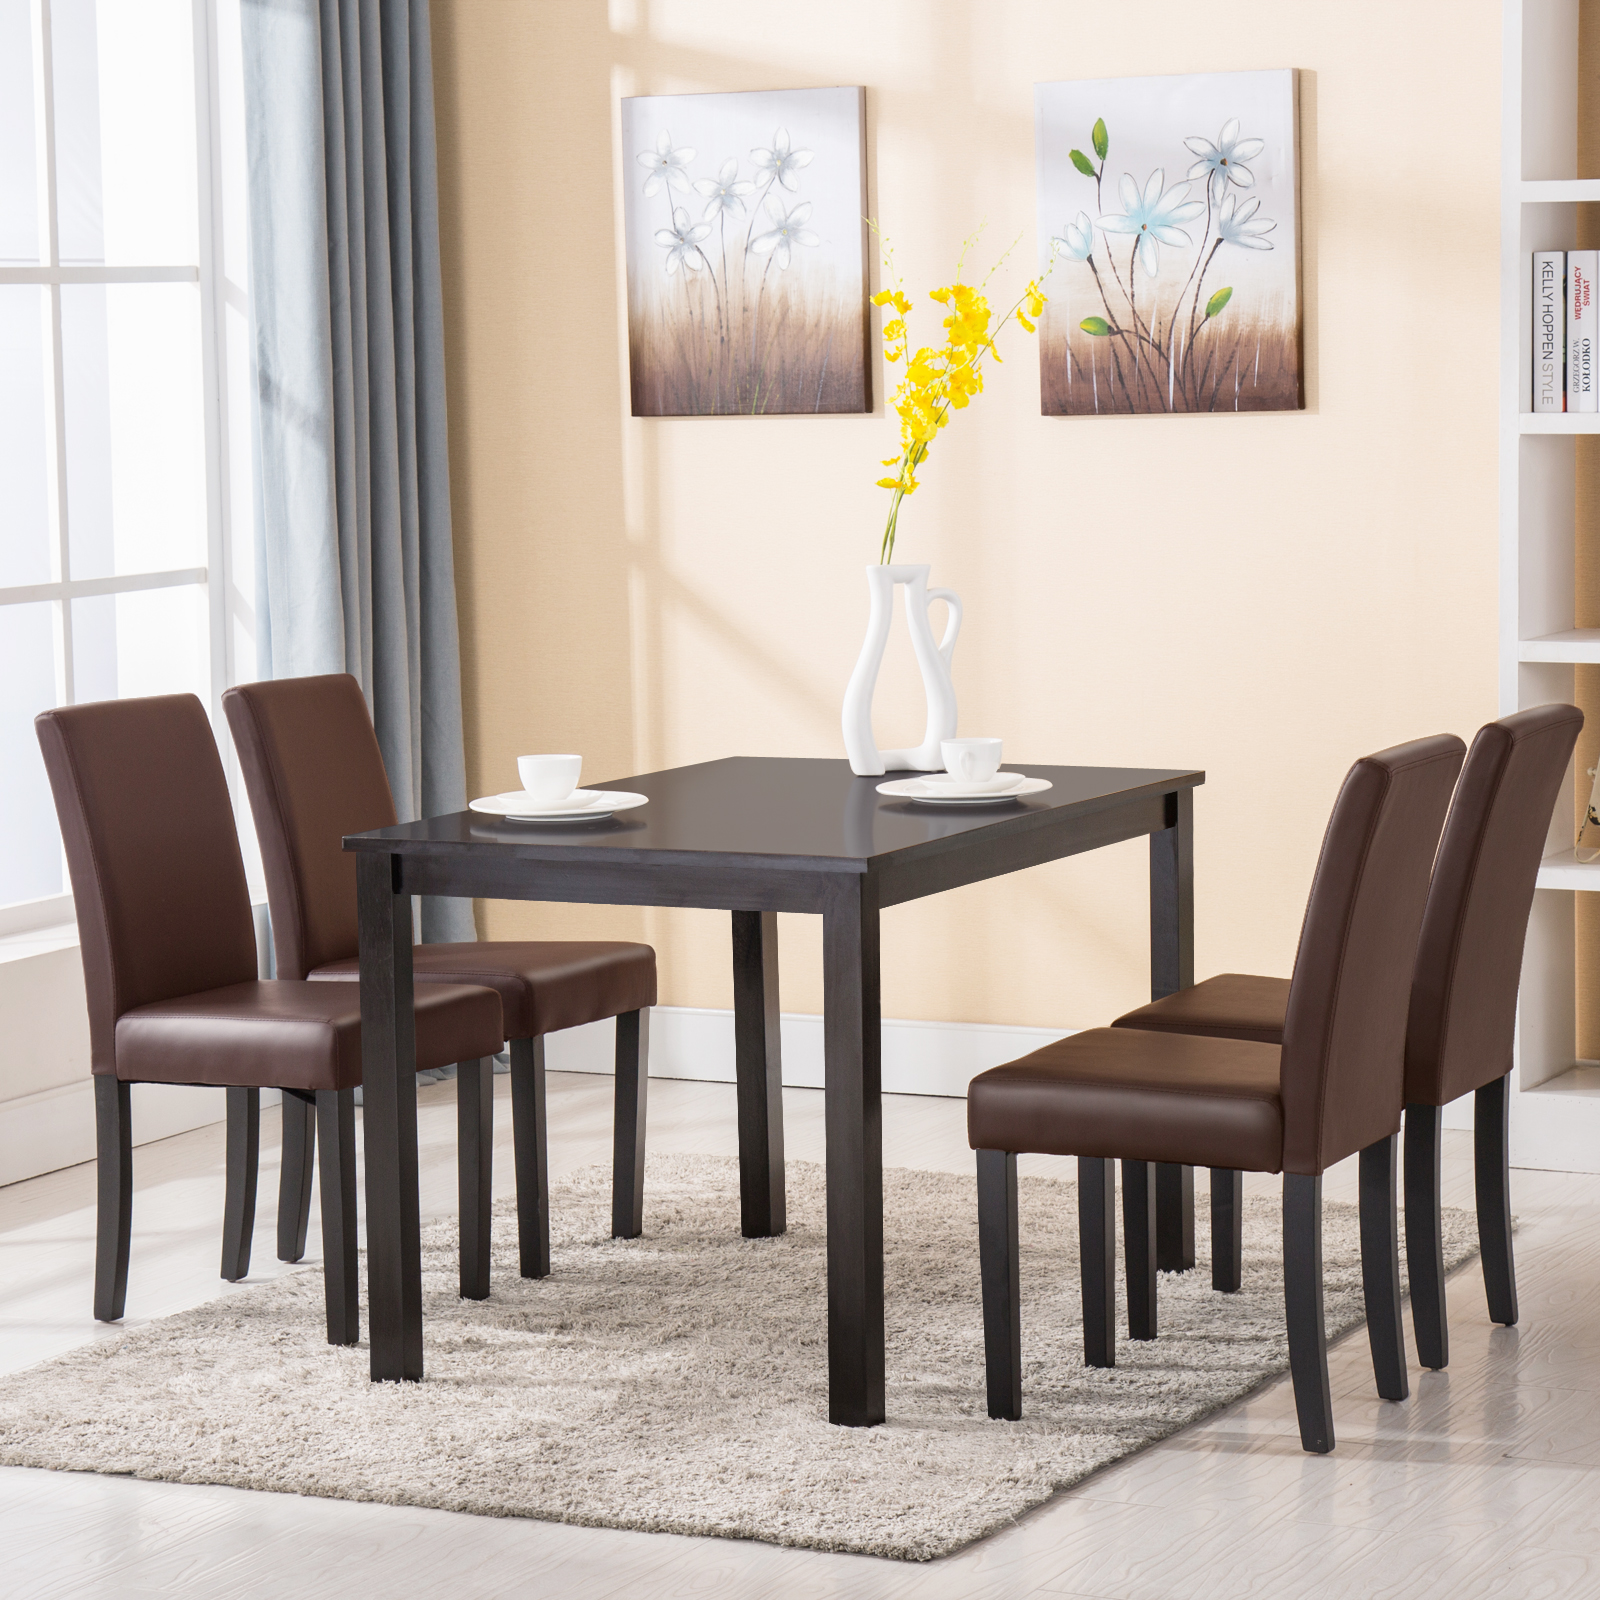 Dining Room Sets Wood